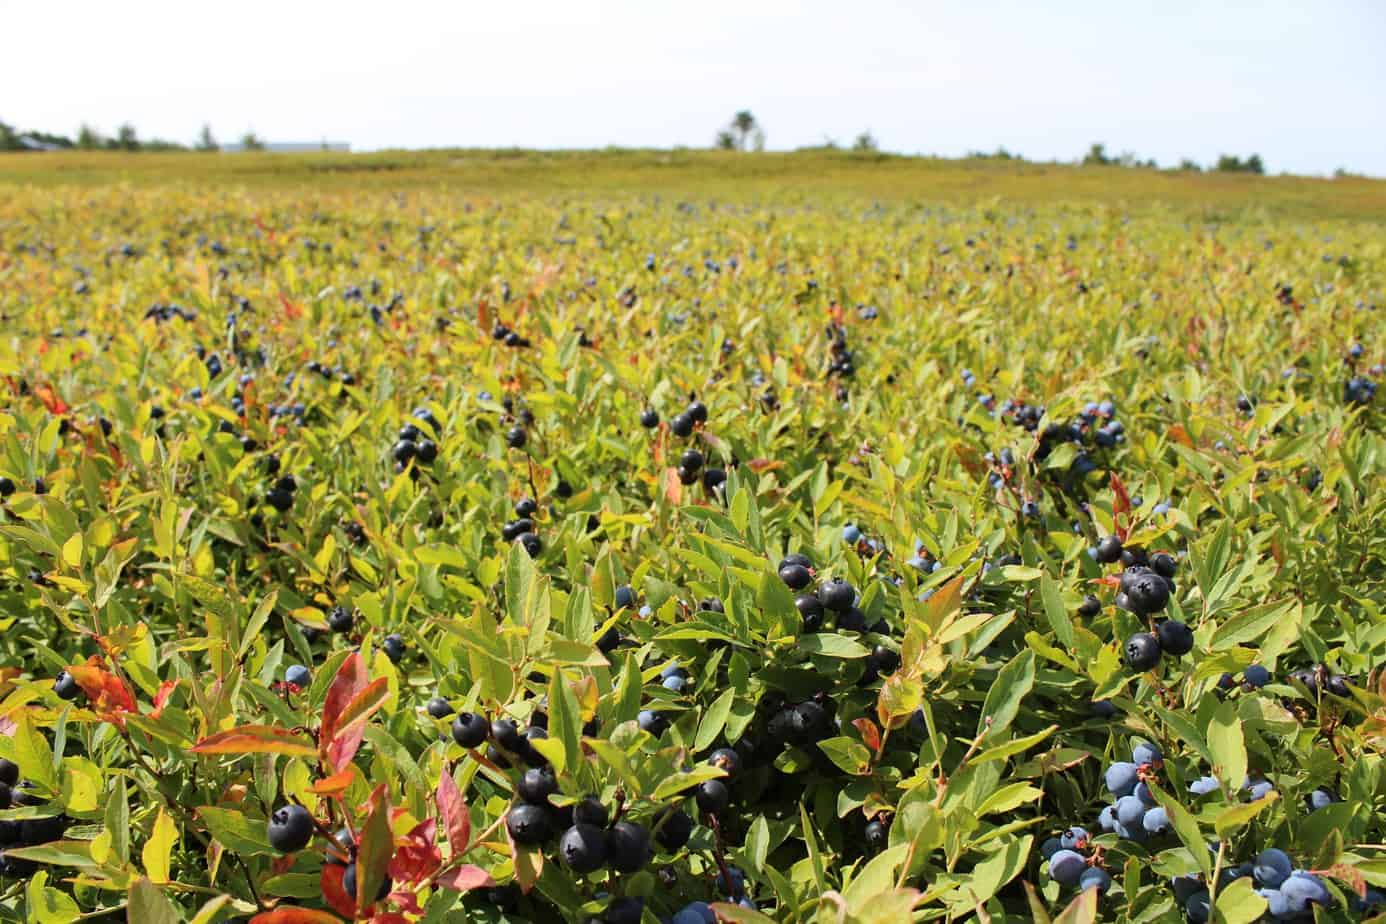 a field of wild blueberry plants